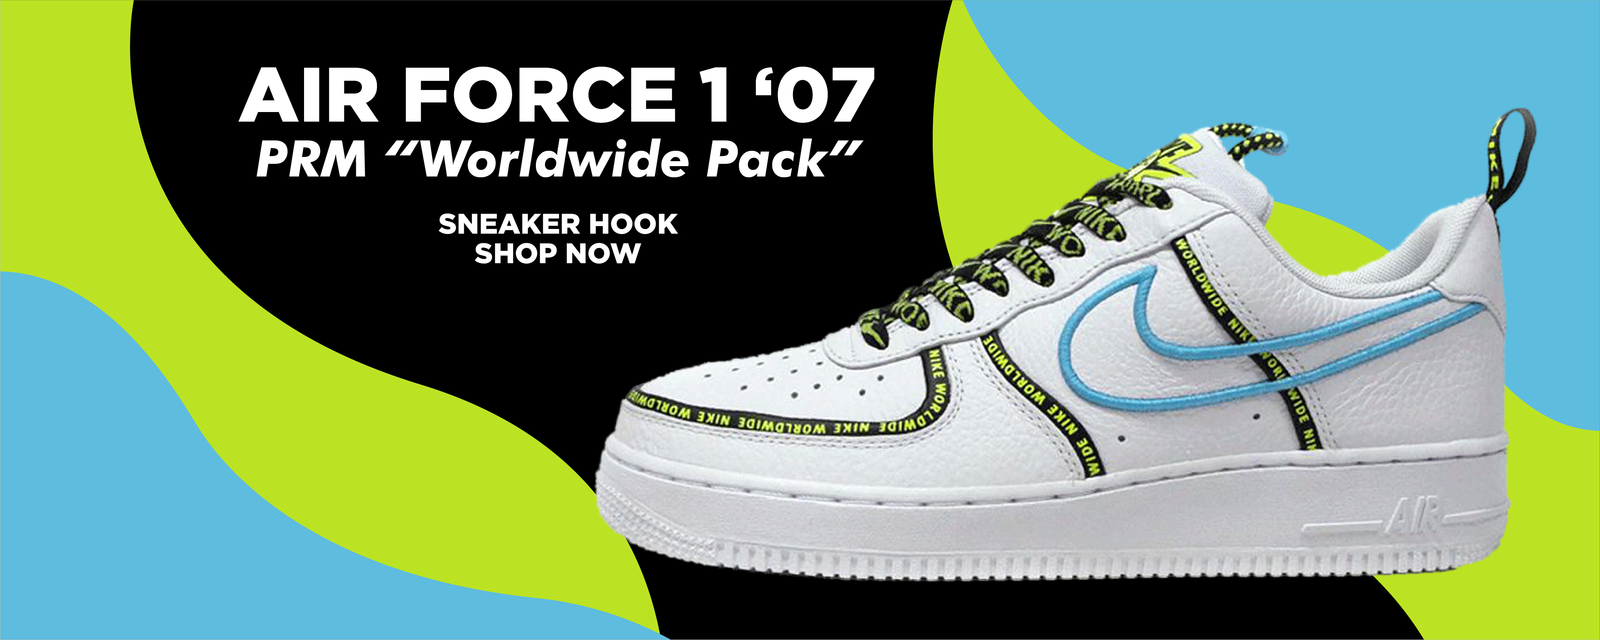 Air Force 1 '07 PRM 'Worldwide Pack' Clothing to match Sneakers | Clothing to match Nike Air Force 1 '07 PRM 'Worldwide Pack' Shoes